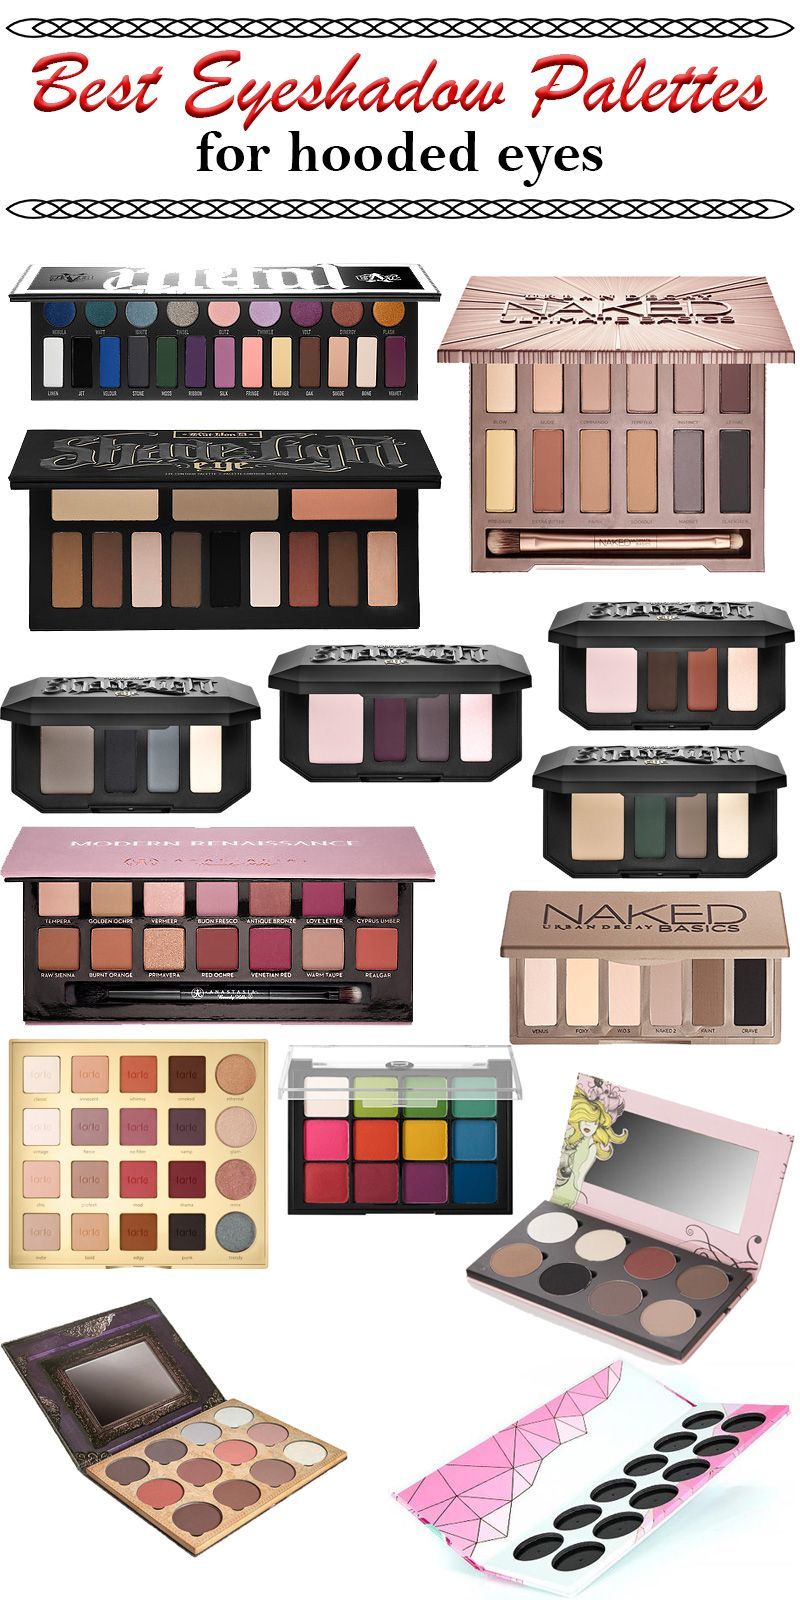 Eyeshadow Palette: Best Eyeshadow Palettes For Hooded Eyes